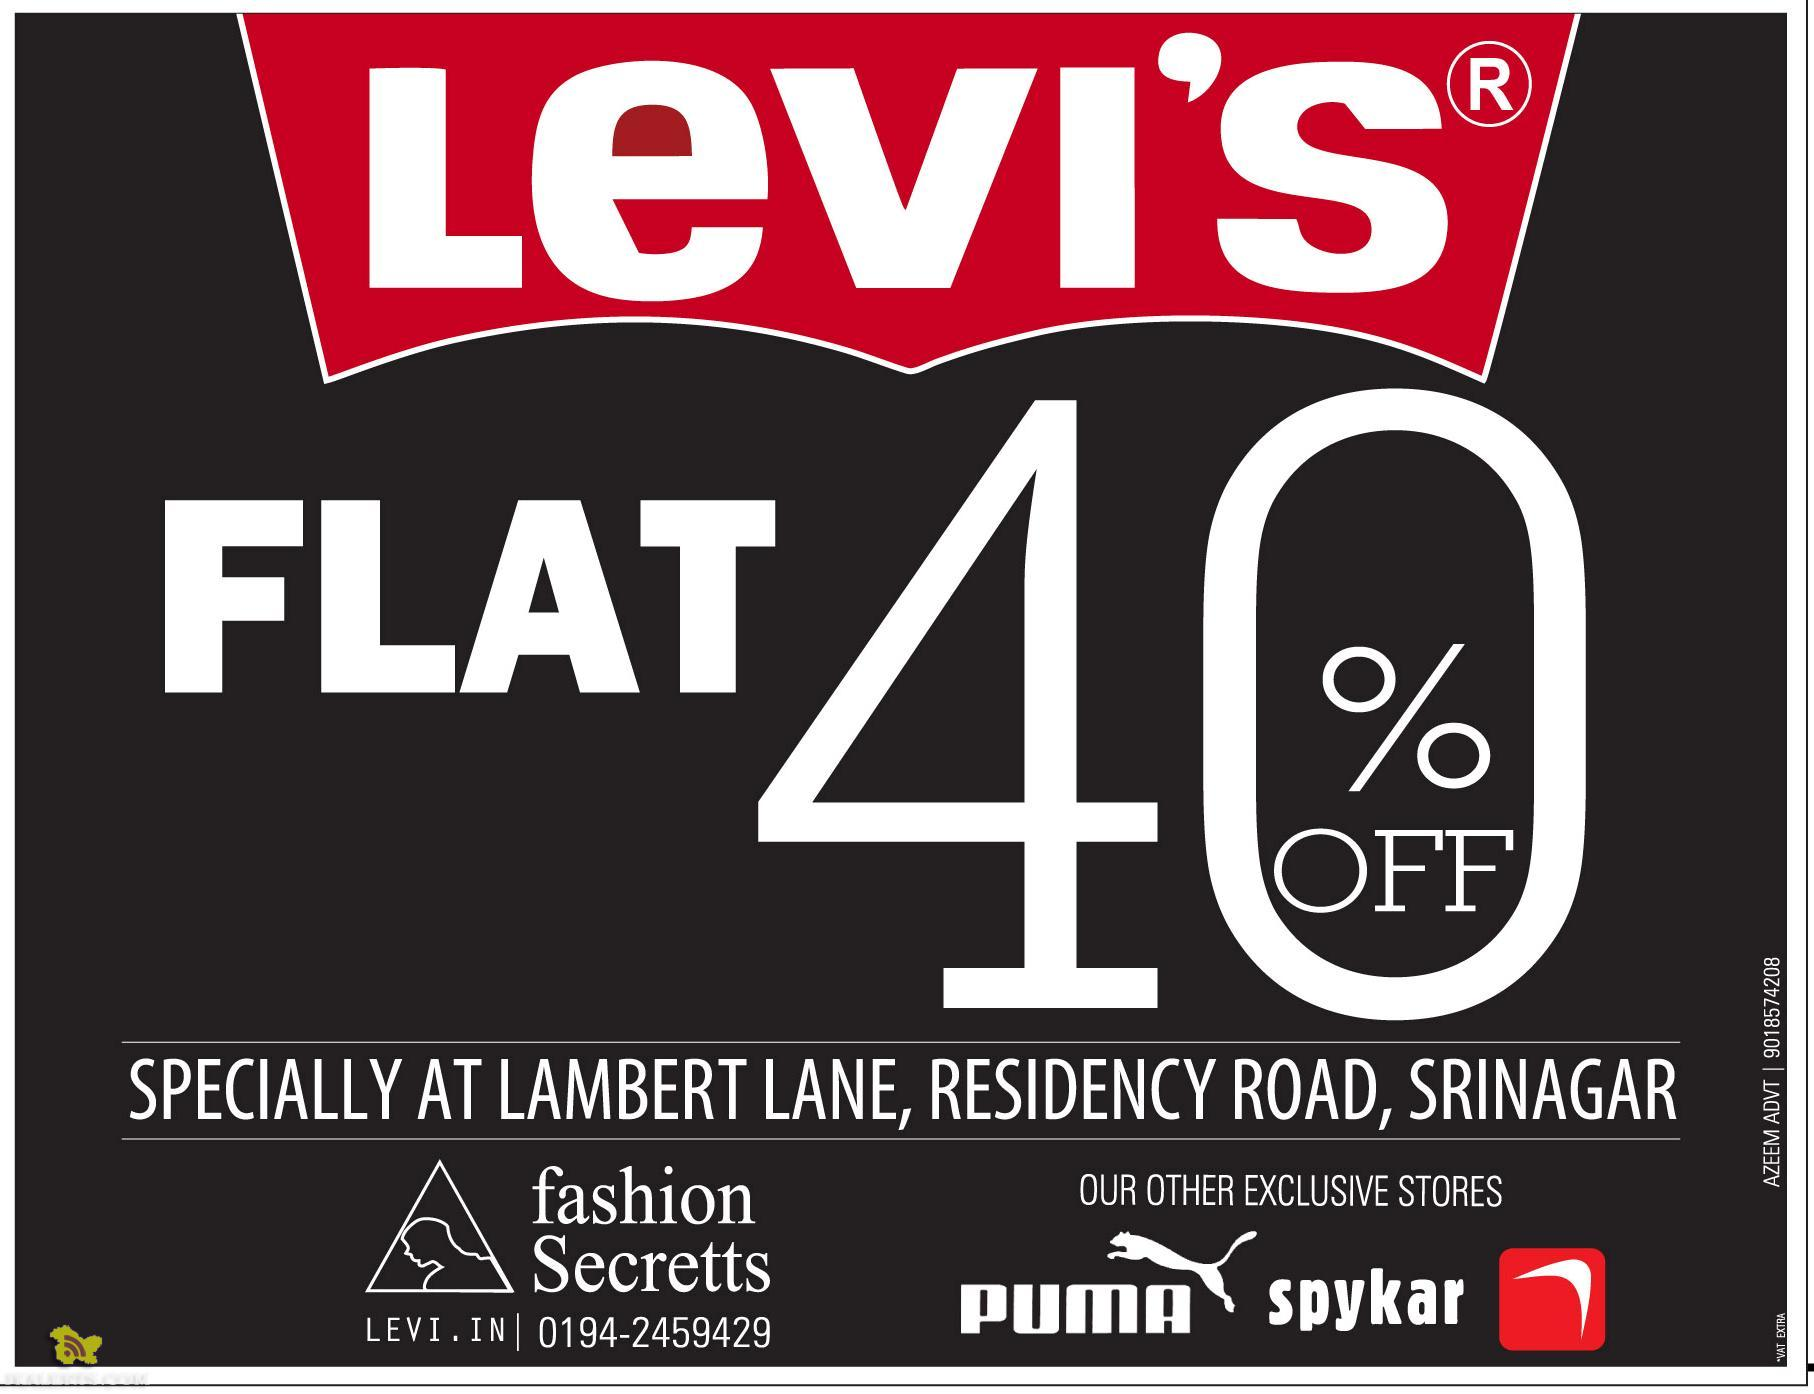 Sale on Levi's, Flat 40% Off